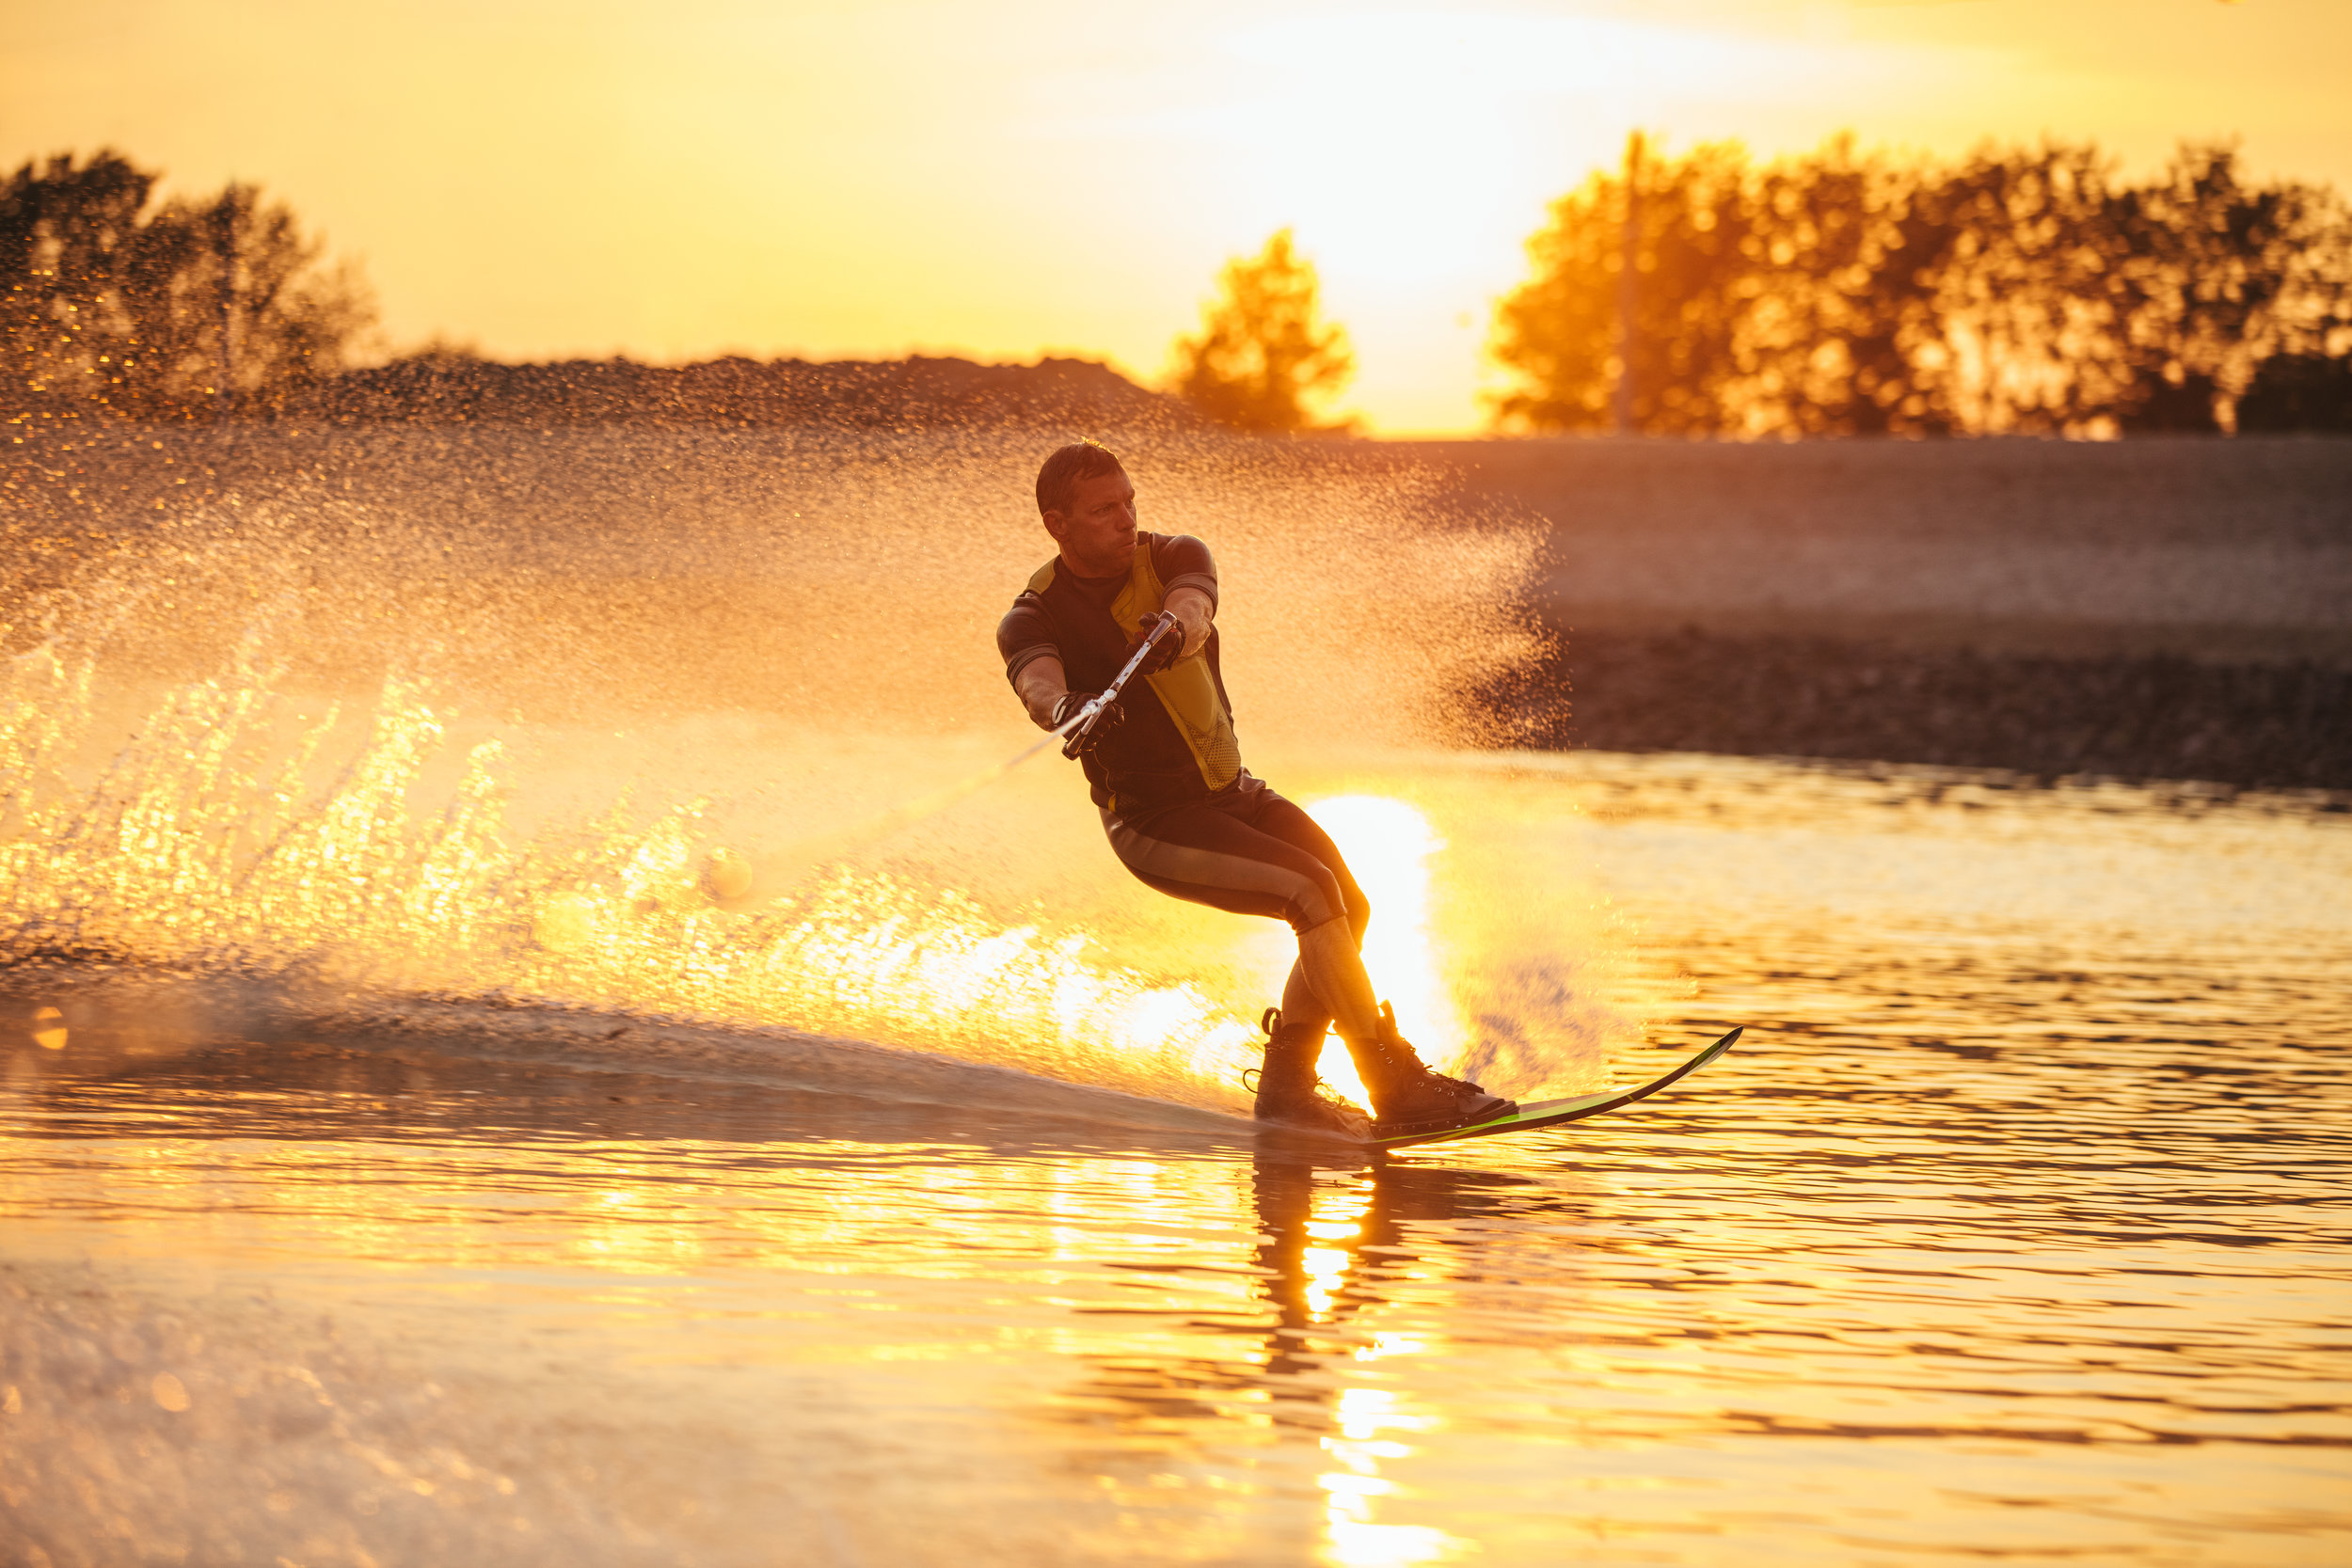 2.) The Delta is to waterskiing what the Rocky Mountains are to snow skiing.